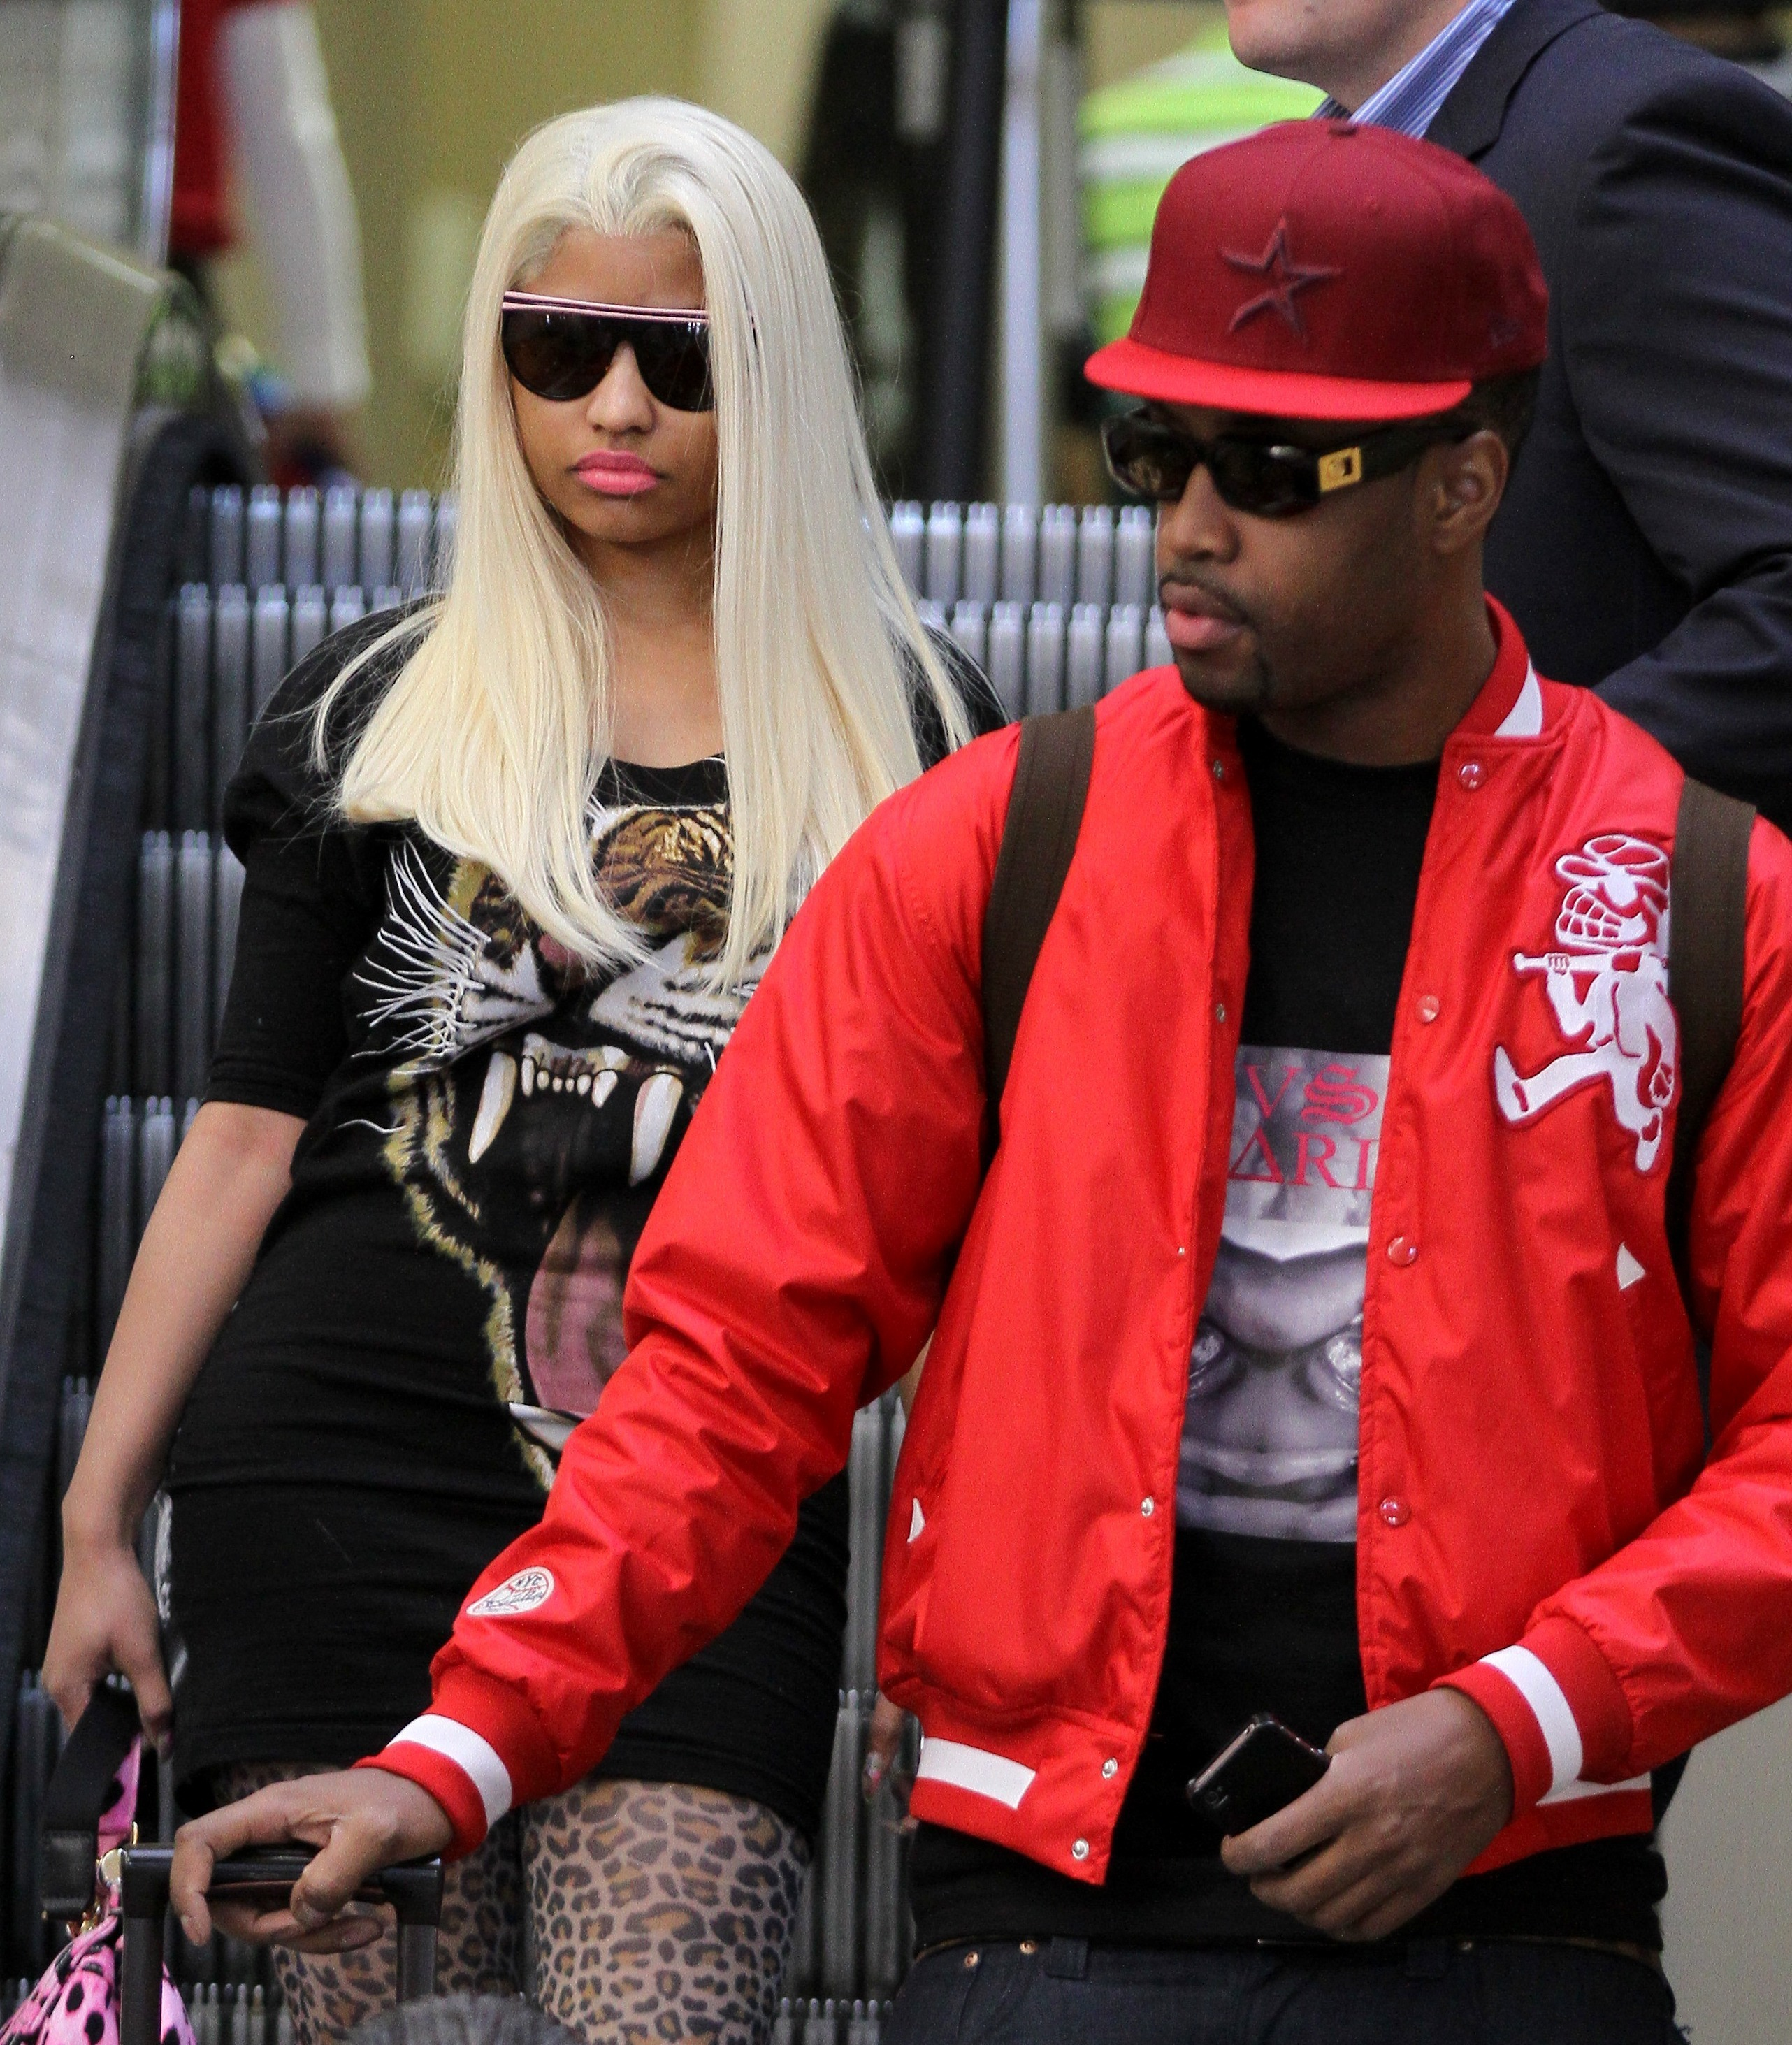 NICKI MINAJ AND BEST FRIEND AT LAX